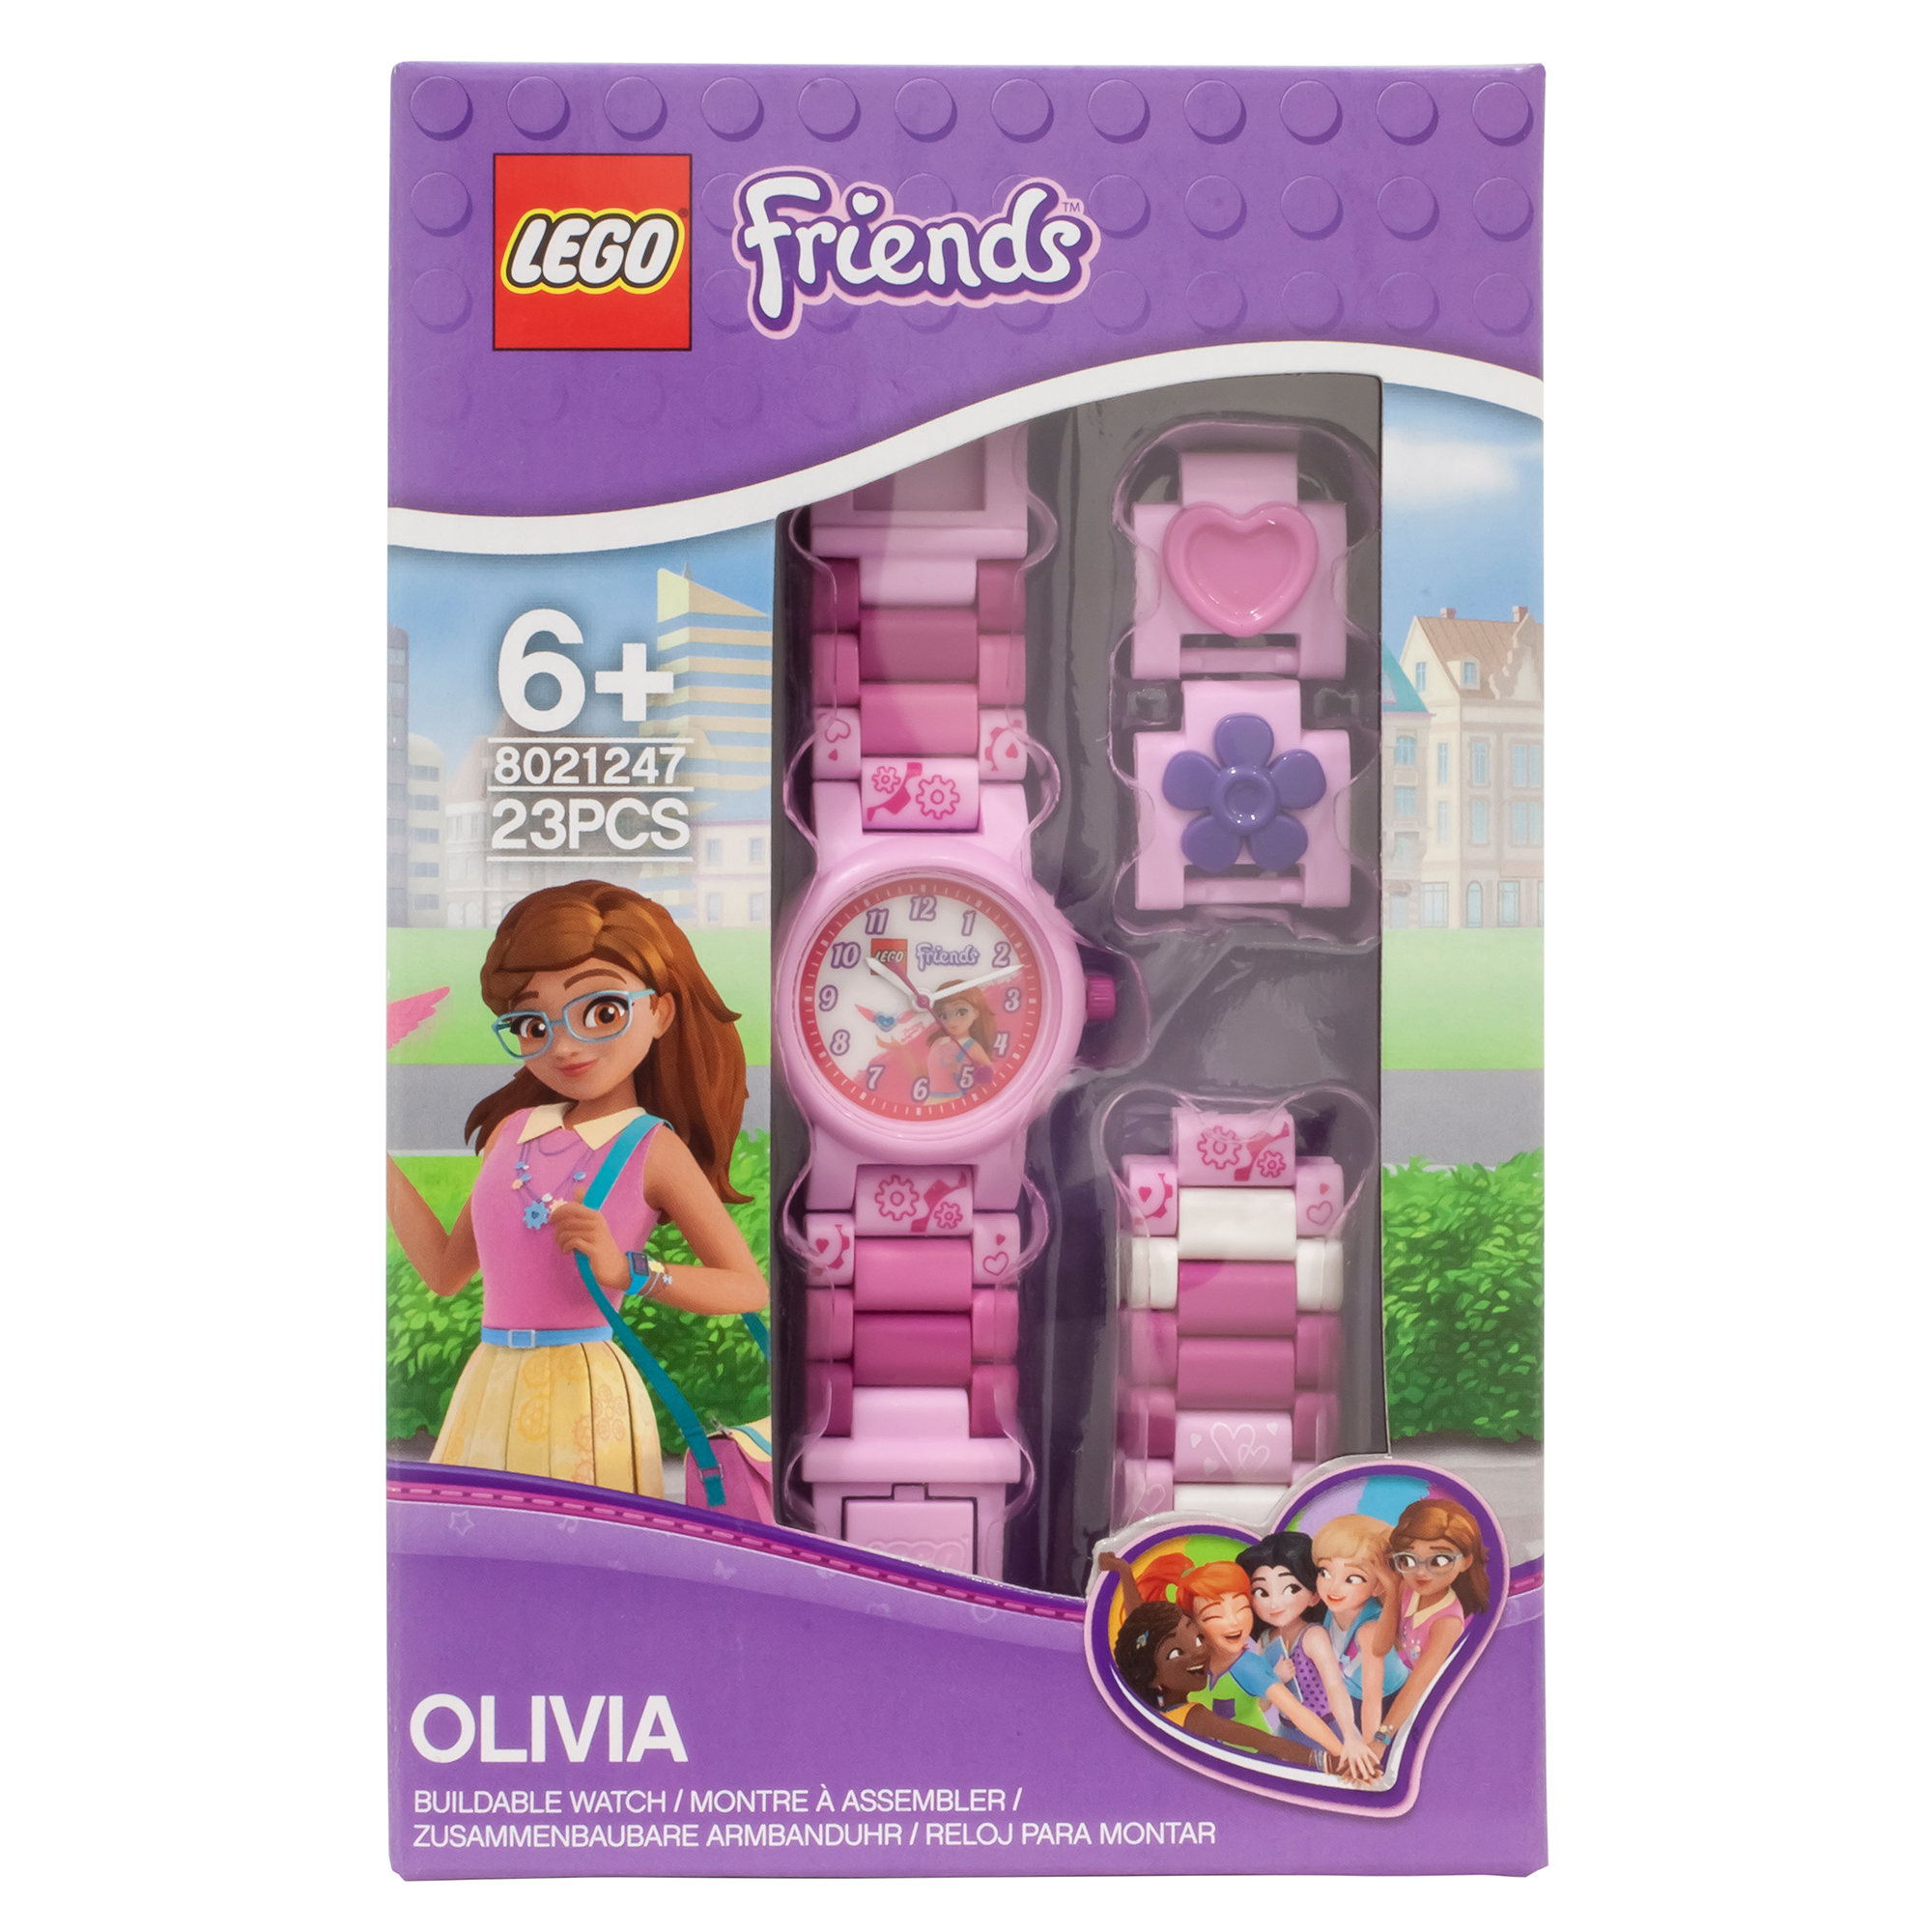 Picture of LEGO Friends Olivia Buildable Watch with Link Bracelet